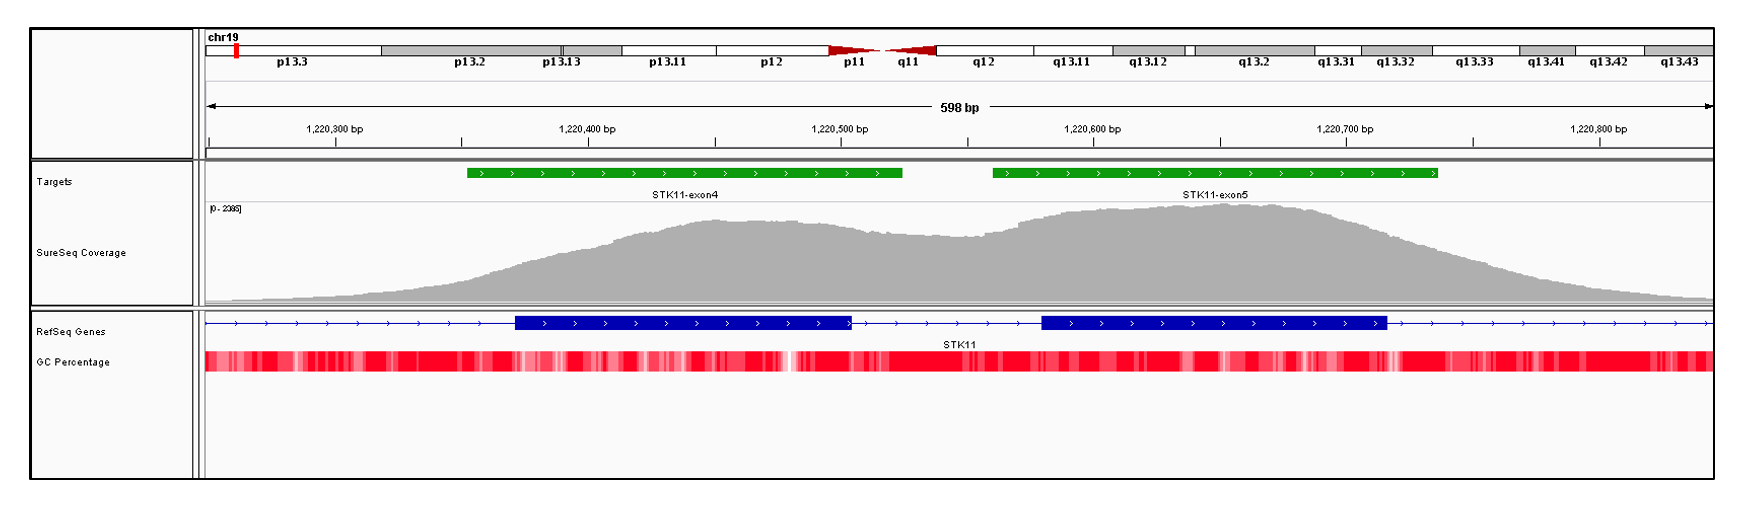 STK11 Exons 4 (hg19 chr19:1220372-1220504) and 5 (hg19 chr19:1220580-1220716). Depth of coverage per base (grey). Targeted region (green). Gene coding region as defined by RefSeq (blue). GC percentage (red). Image